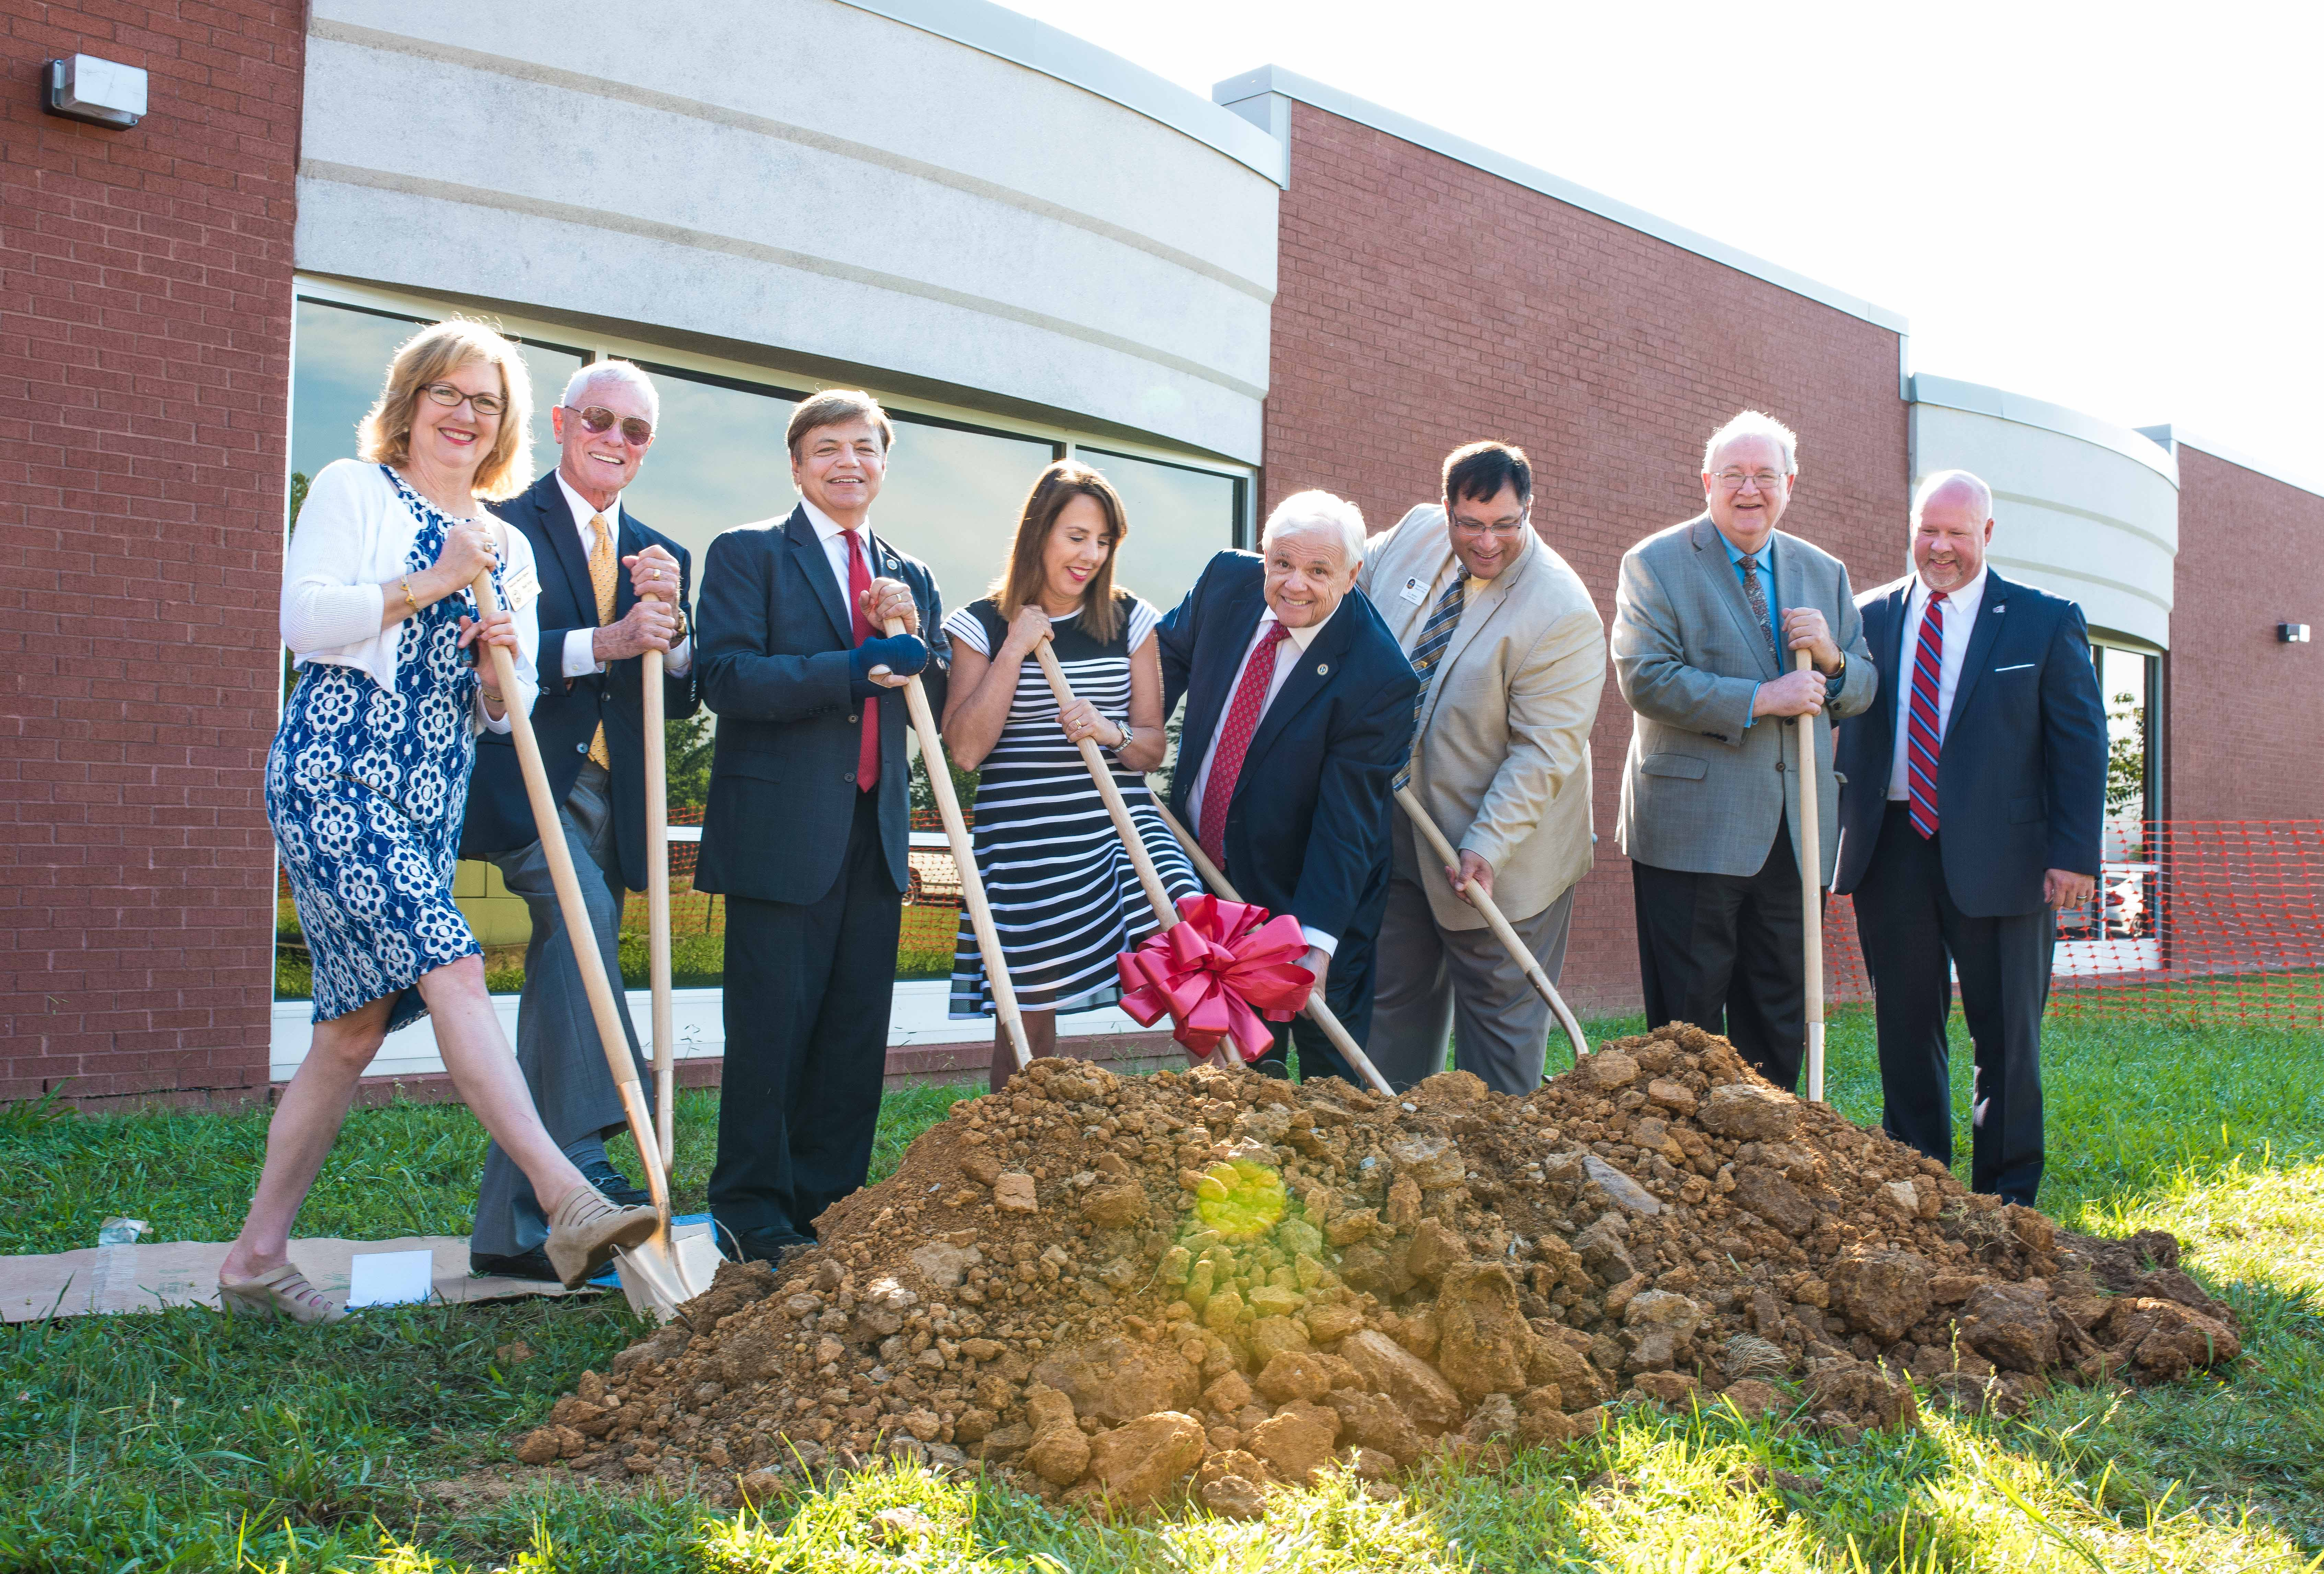 Left to Right: Danni Varland of TBR, Ed Wheeler (Donated the land to RSCC), Rep. Dennis Powers, RSCC Director Tracy Powers, Sen. Ken Yager, Campbell County Mayor E.L. Morton, Bill Vinson of Community Tectonics Architects, and Dr. Chris Whaley of RSCC